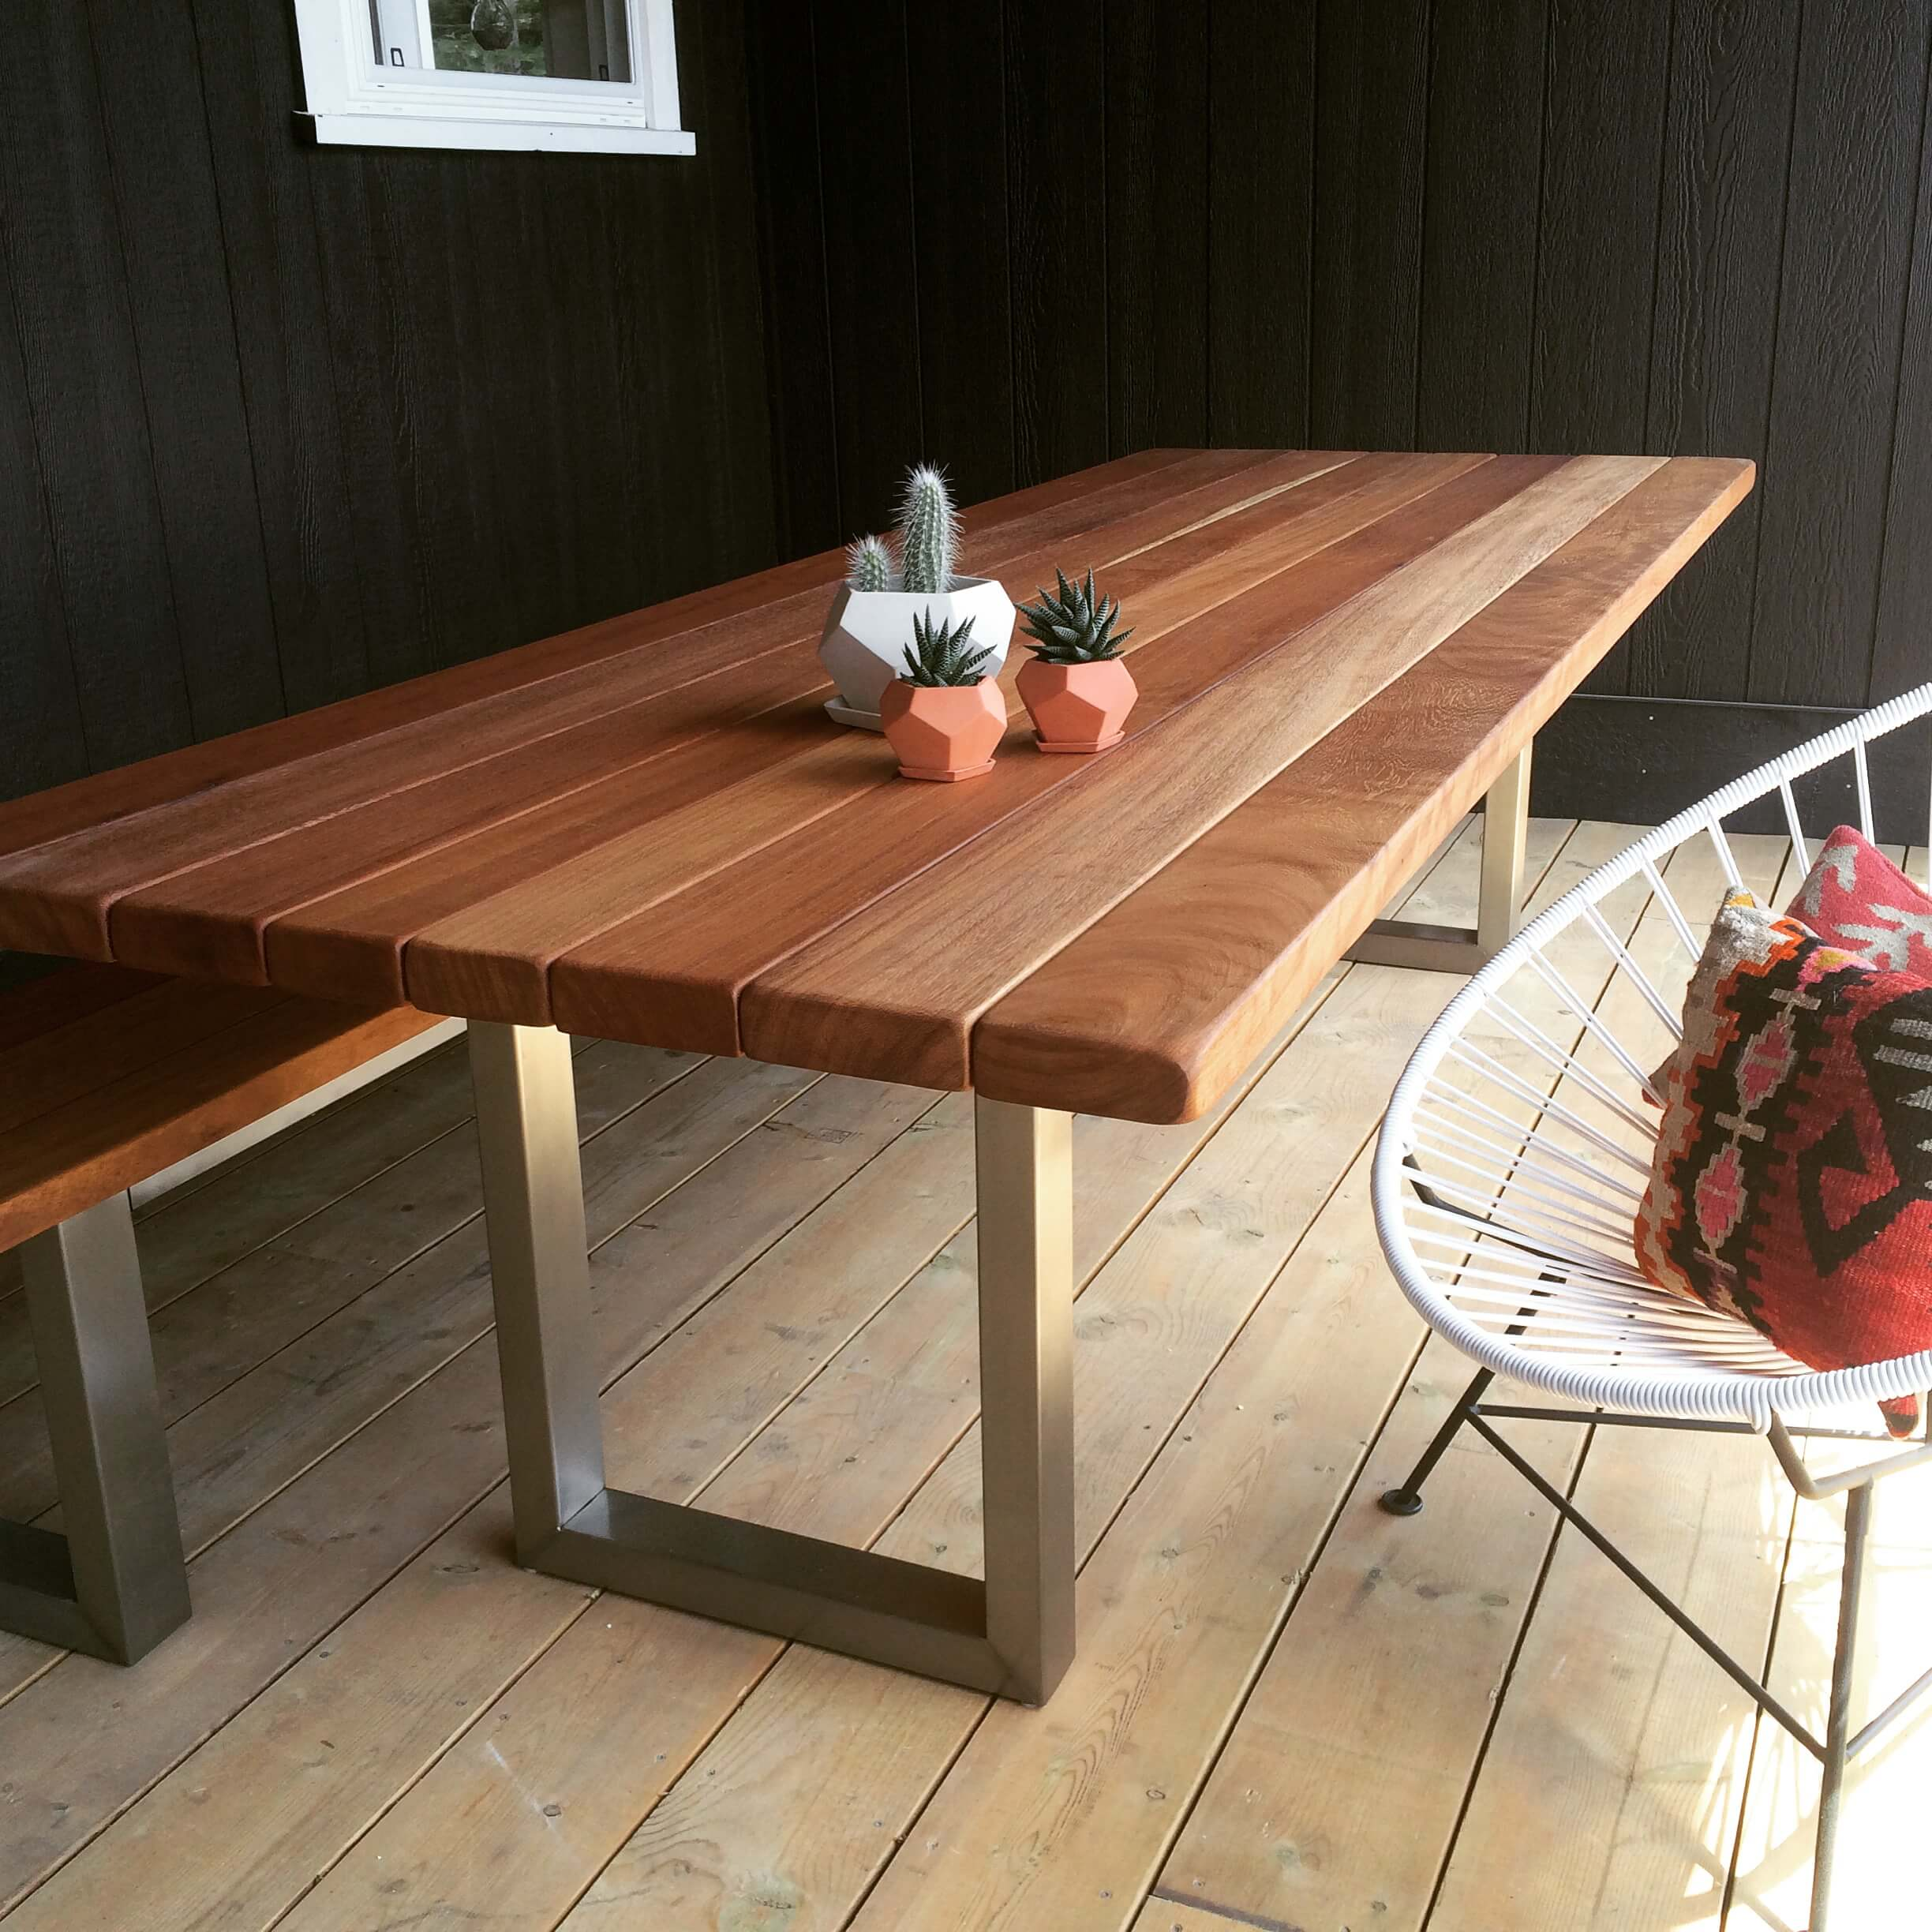 teak outdoor table made in Muskoka